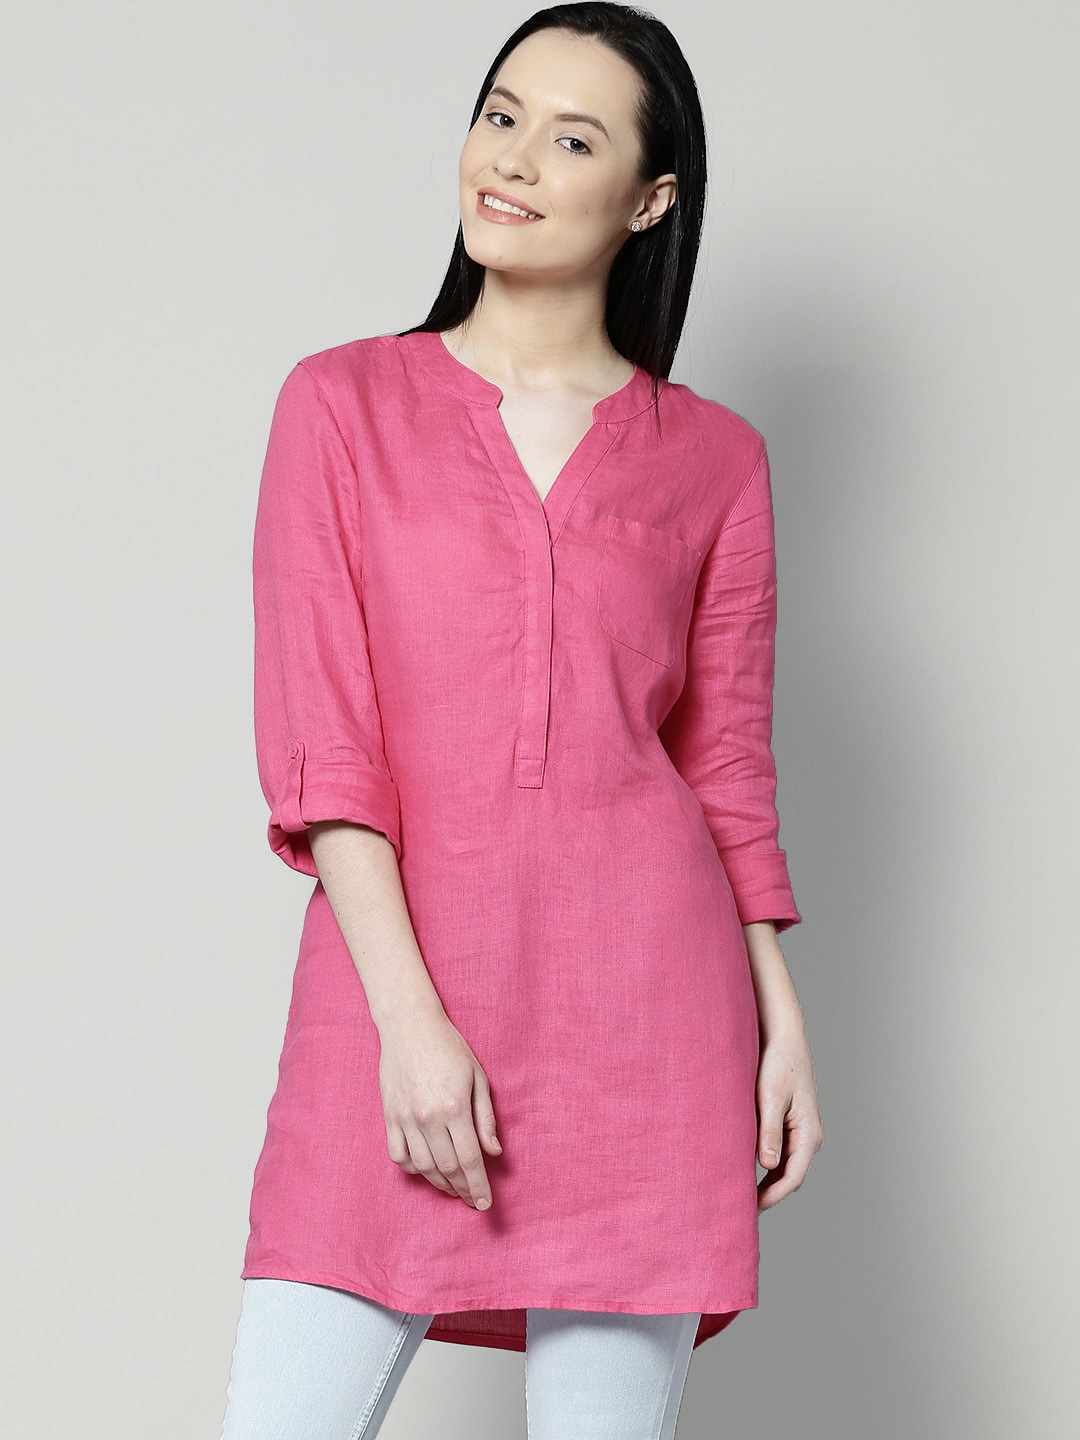 9 Stylish Amp Comfortable Linen Tunics For Men And Women